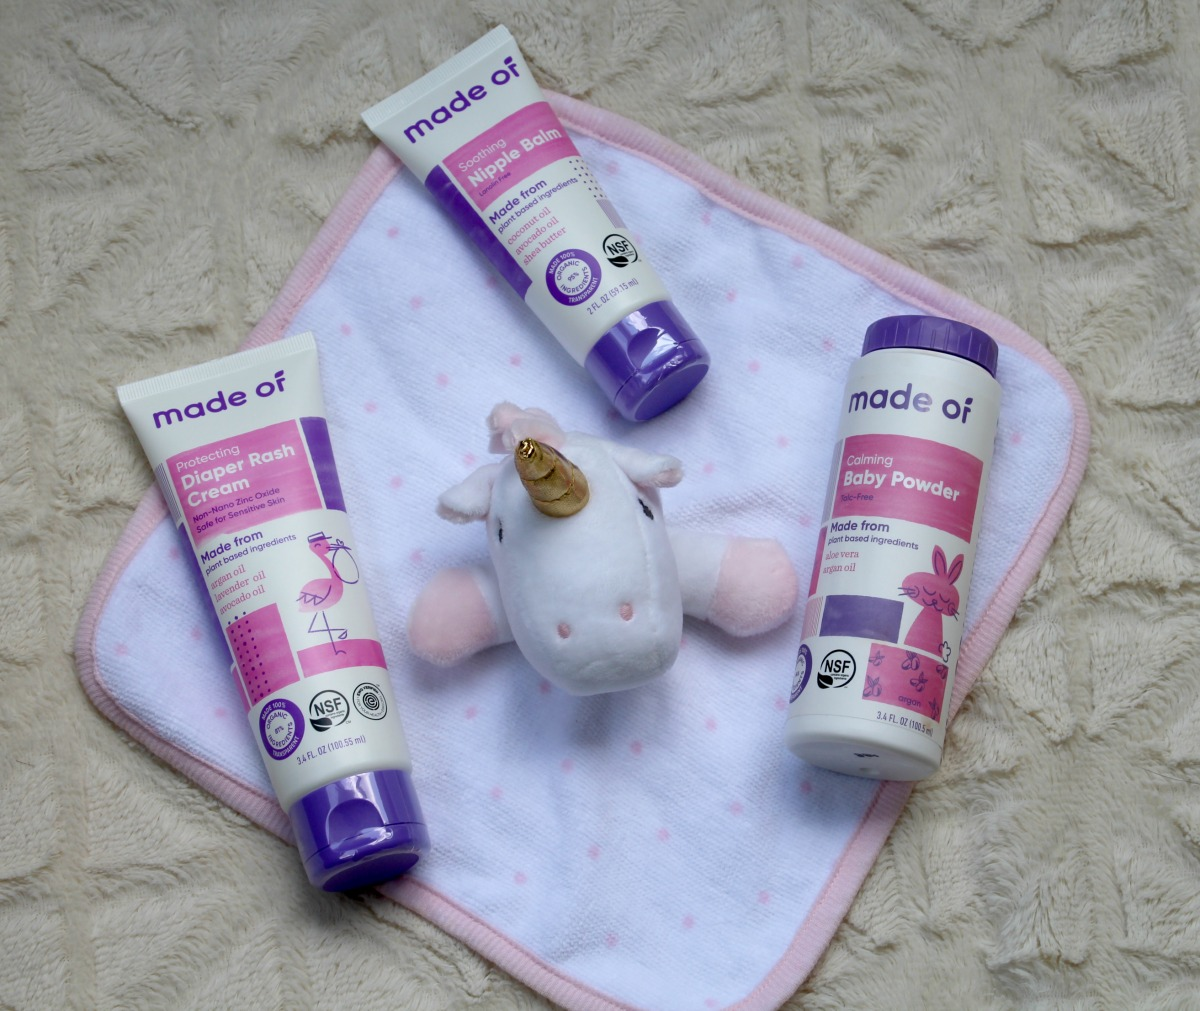 The Safest & Most Transparent Baby Skincare & Diapering!